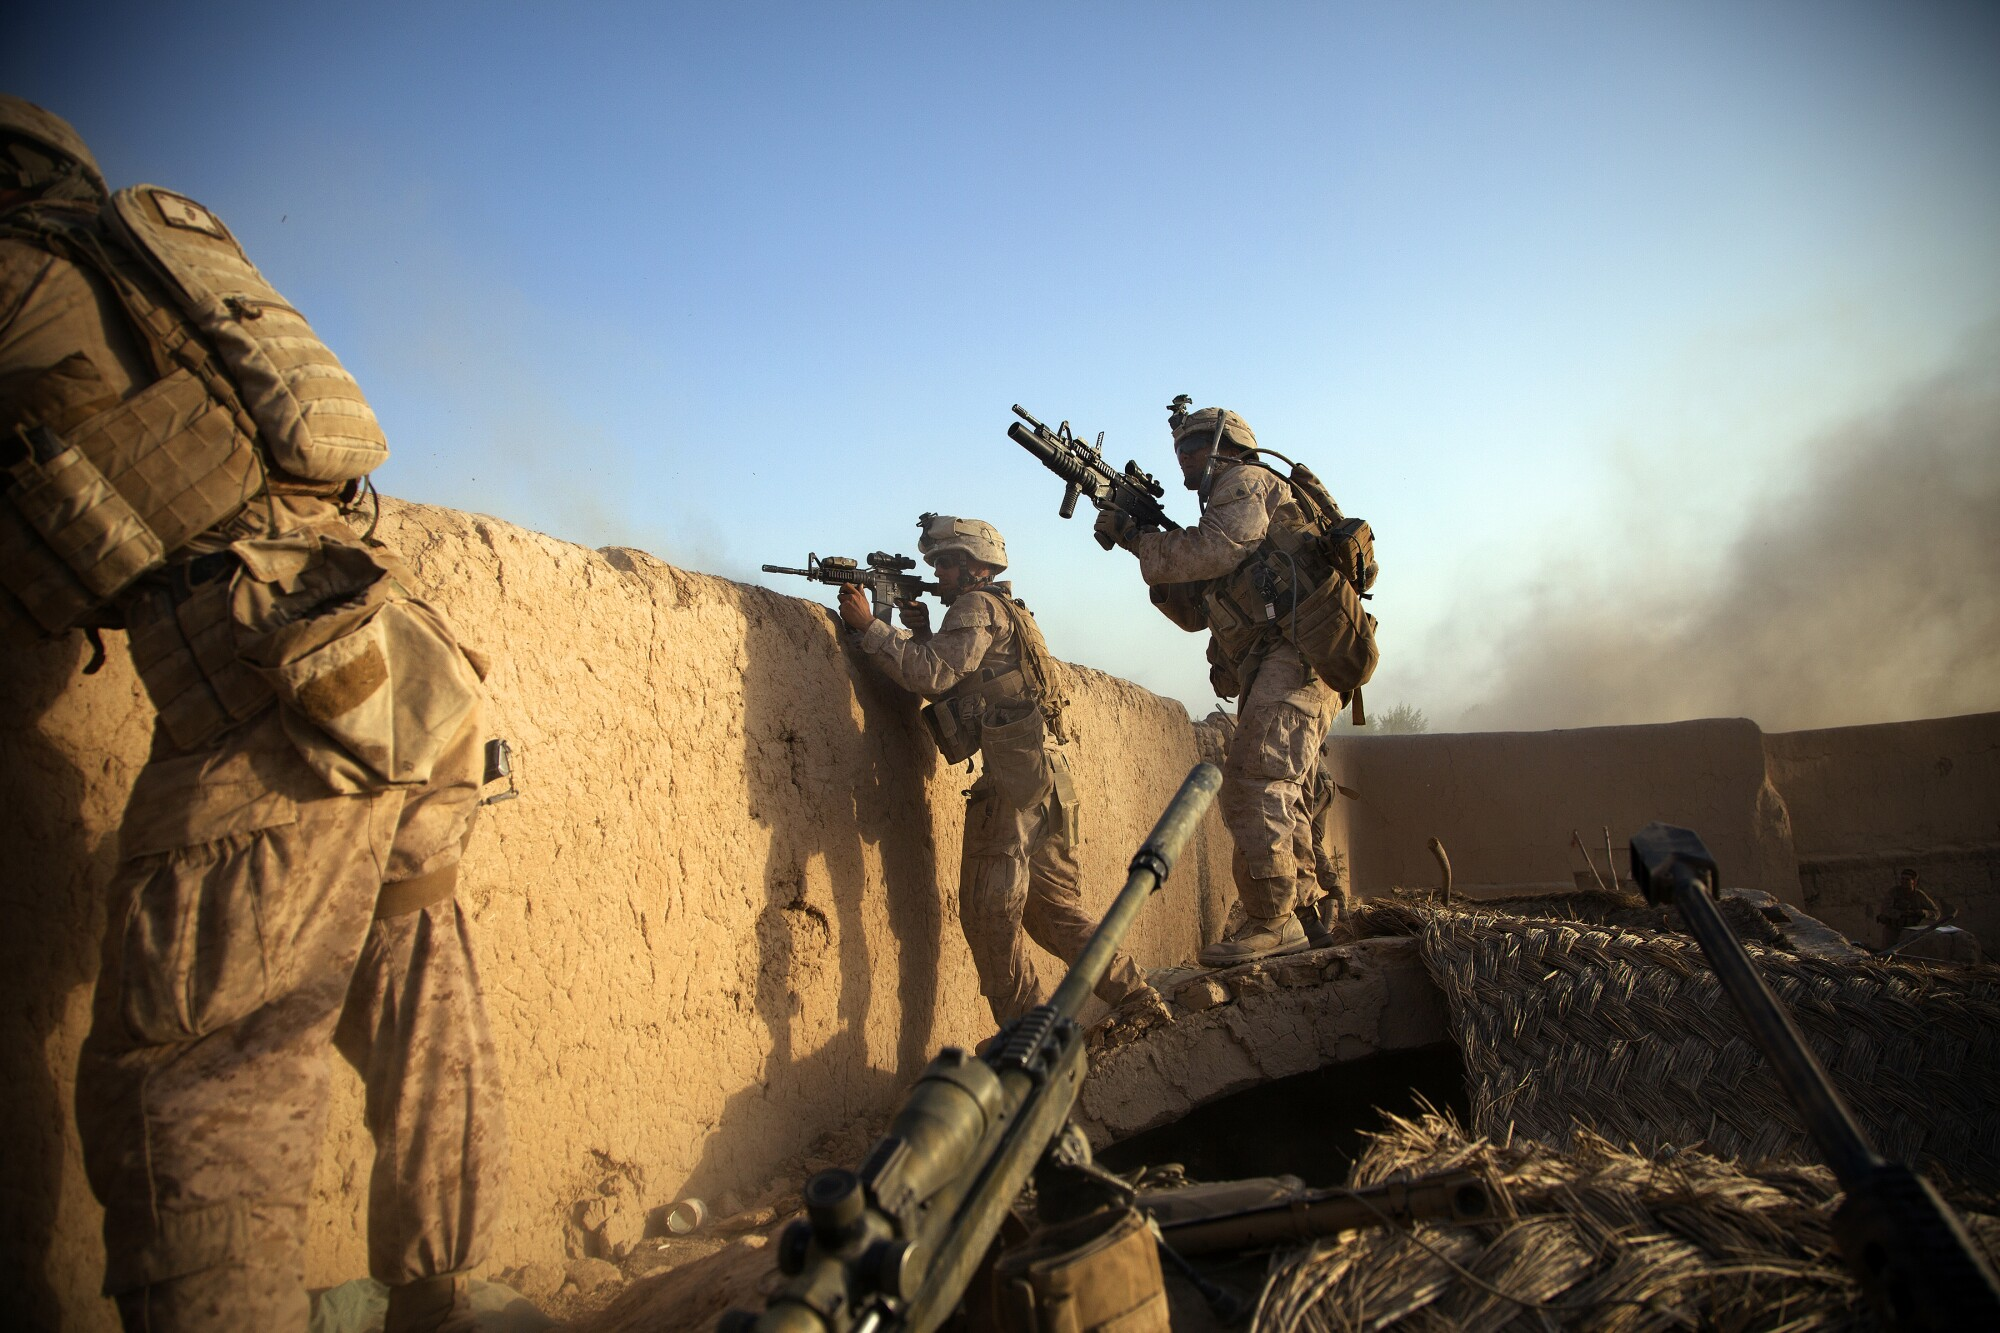 Marines from the 2nd Battalion 5th Marine Regiment return fire on the enemy